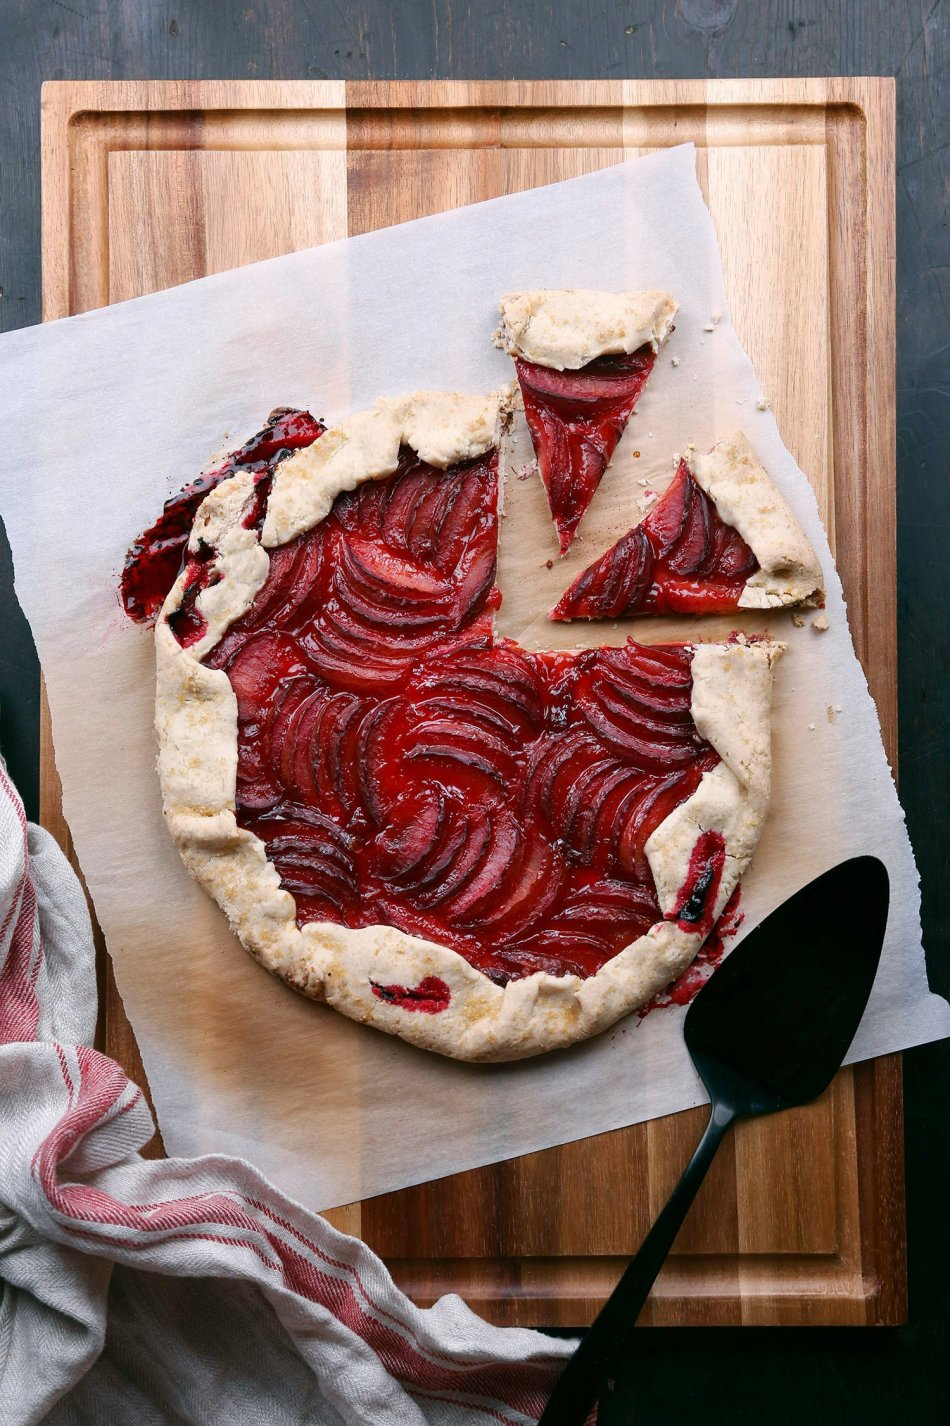 Rustic Plum Tart | Vegan friendly with gluten free option.